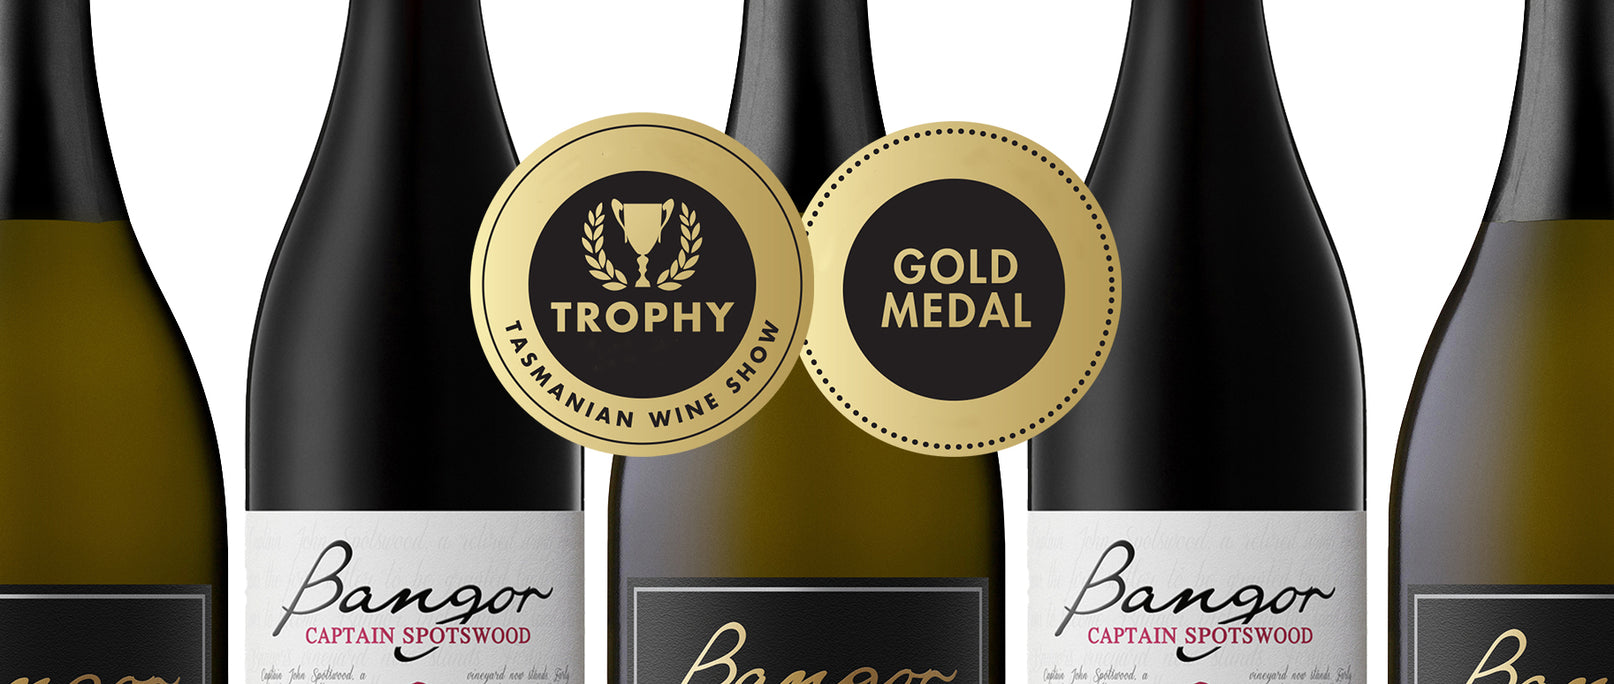 3 Trophies for Bangor at Tasmanian Wine Show